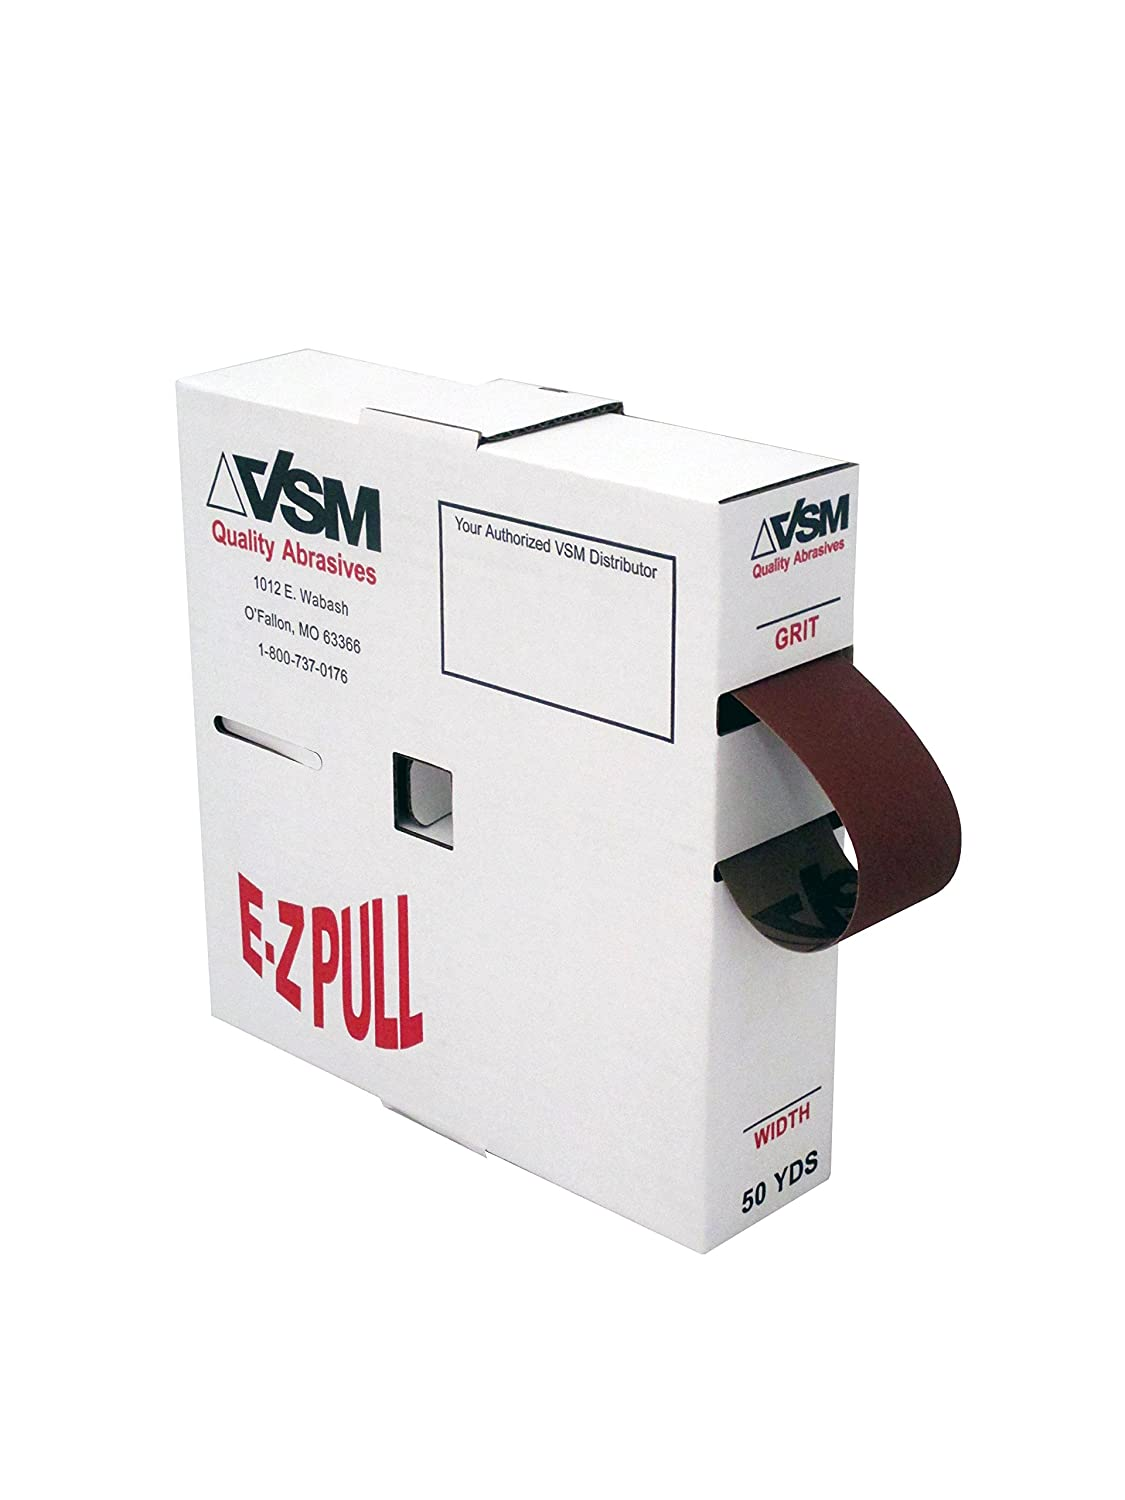 VSM 314401 Abrasives Cloth, 1' x 50 yd. Roll, 400 Grit 1 x 50 yd. Roll VSM Abrasives Co.